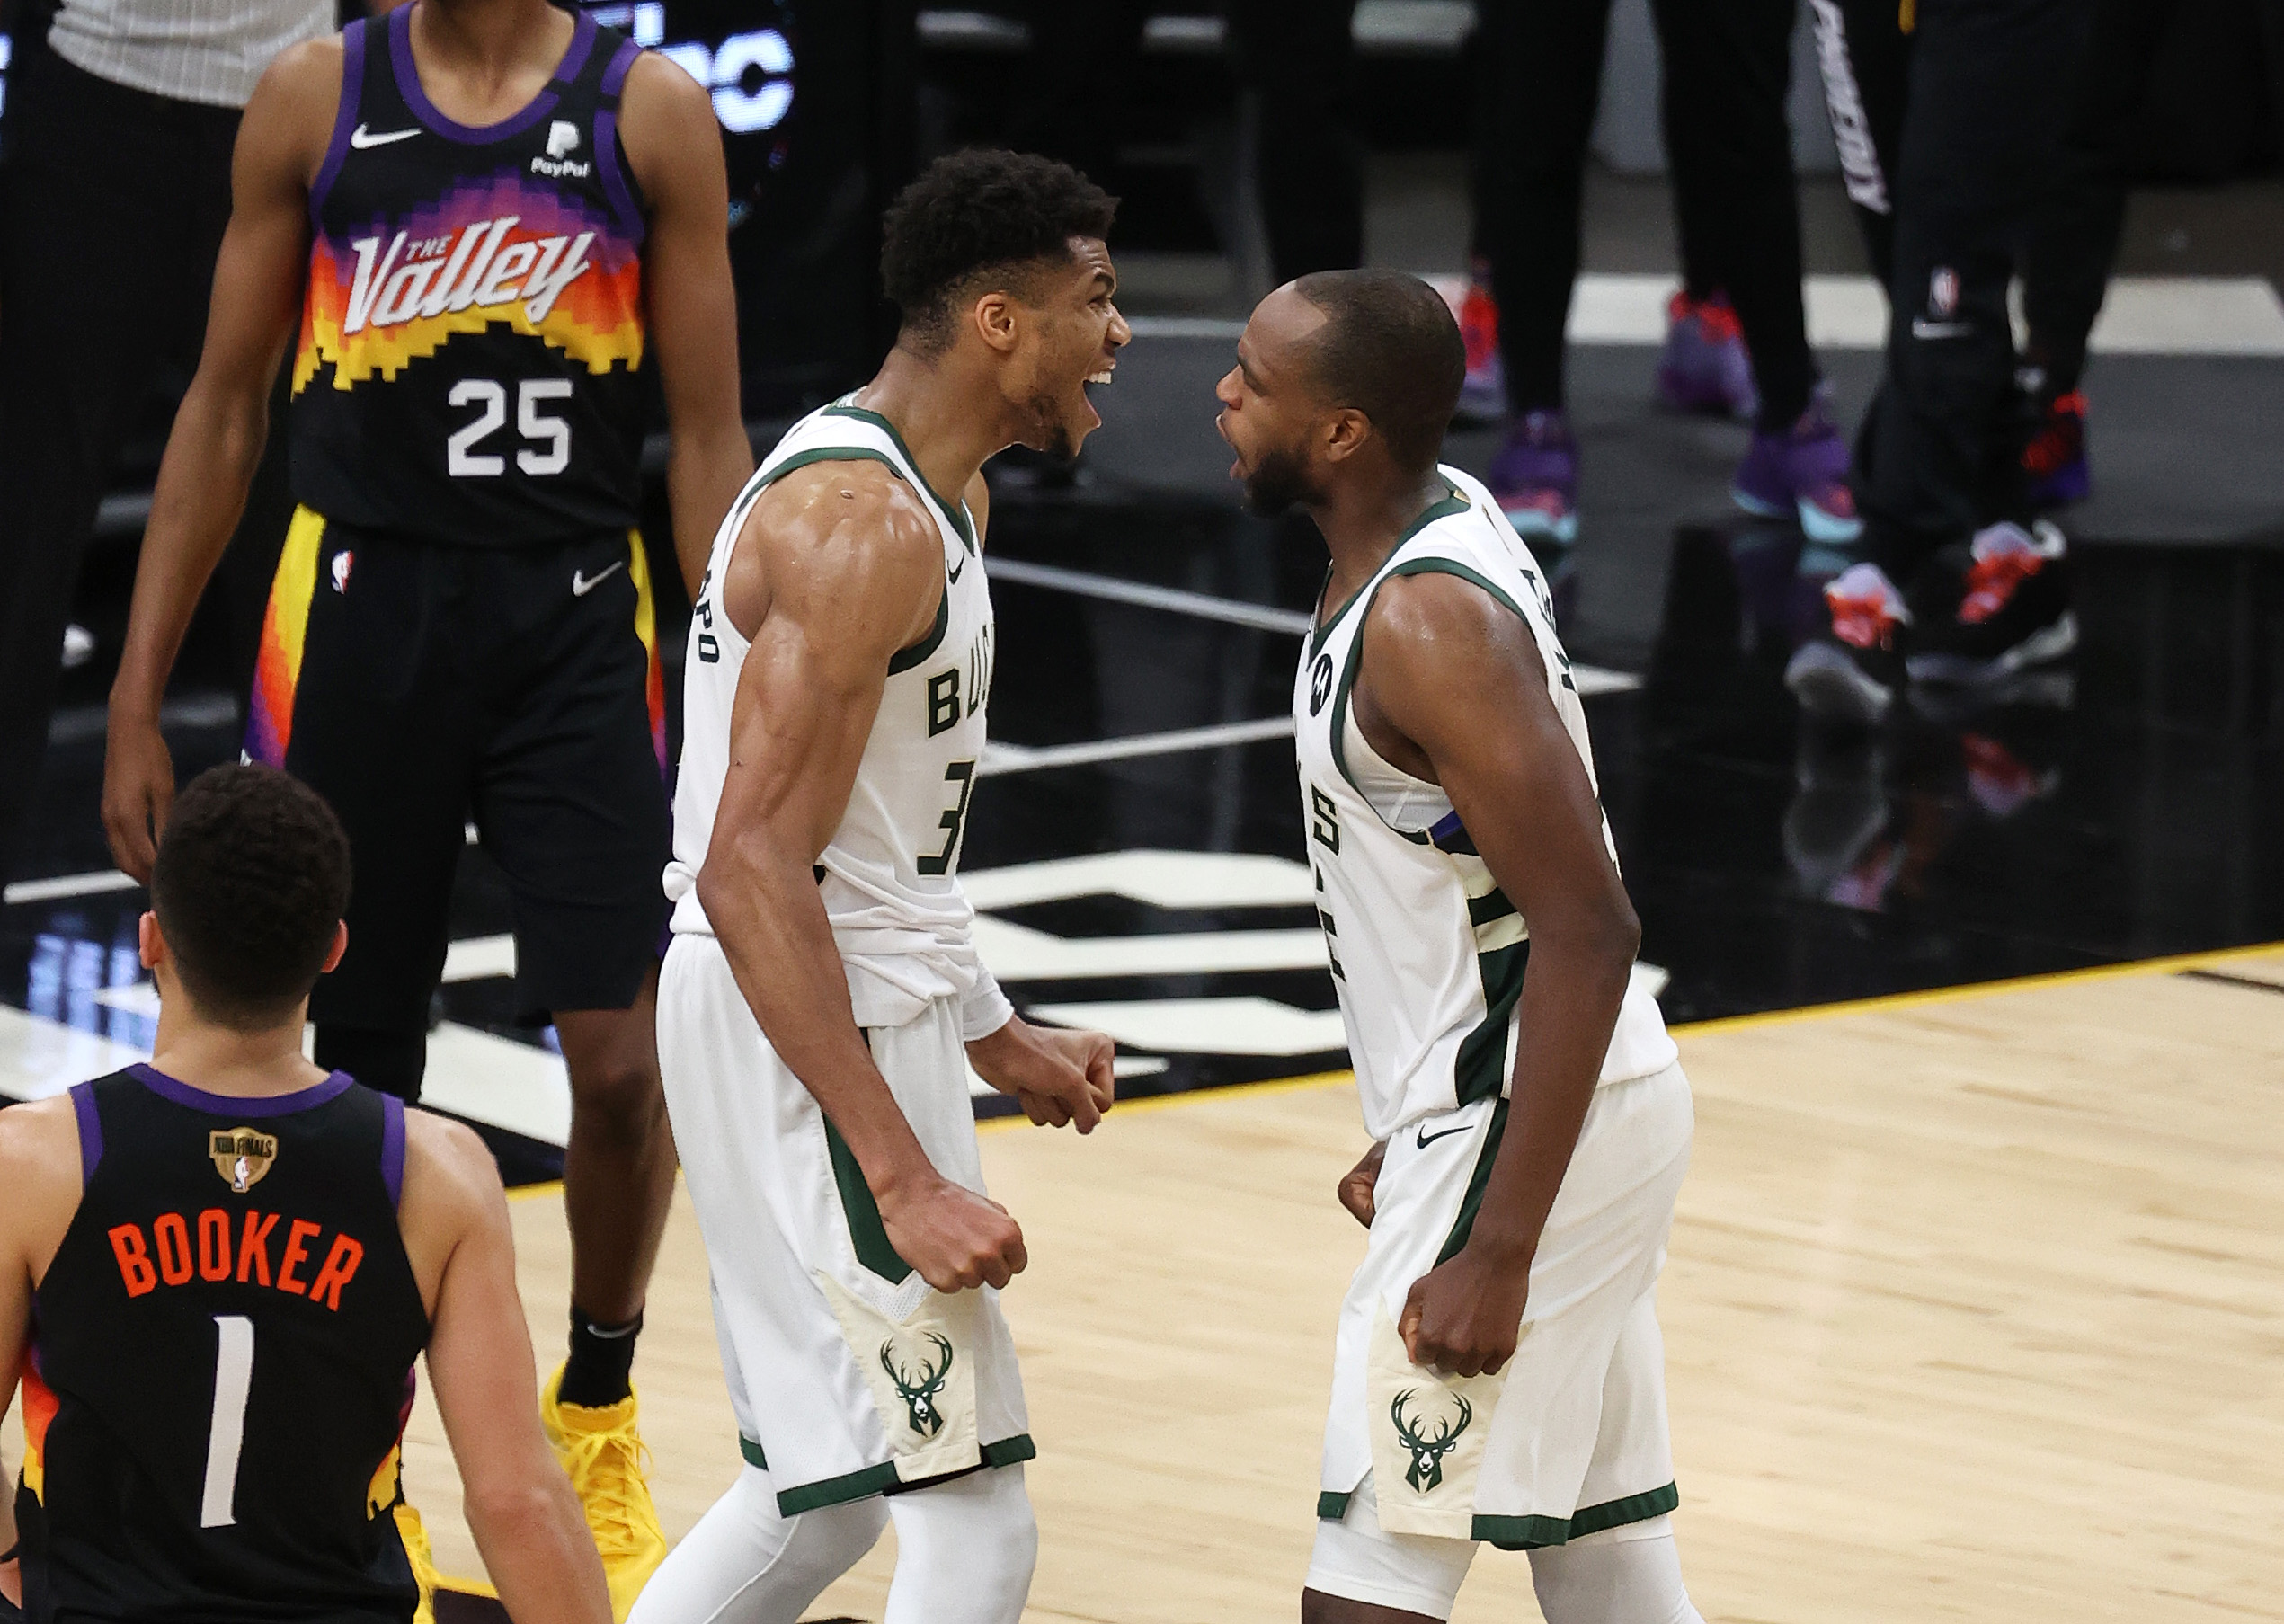 Giannis Antetokounmpo and Khris Middleton of the Milwaukee Bucks celebrate a win against the Phoenix Suns in Game Five of the NBA Finals at Footprint Center on July 17, 2021 in Phoenix, Arizona.